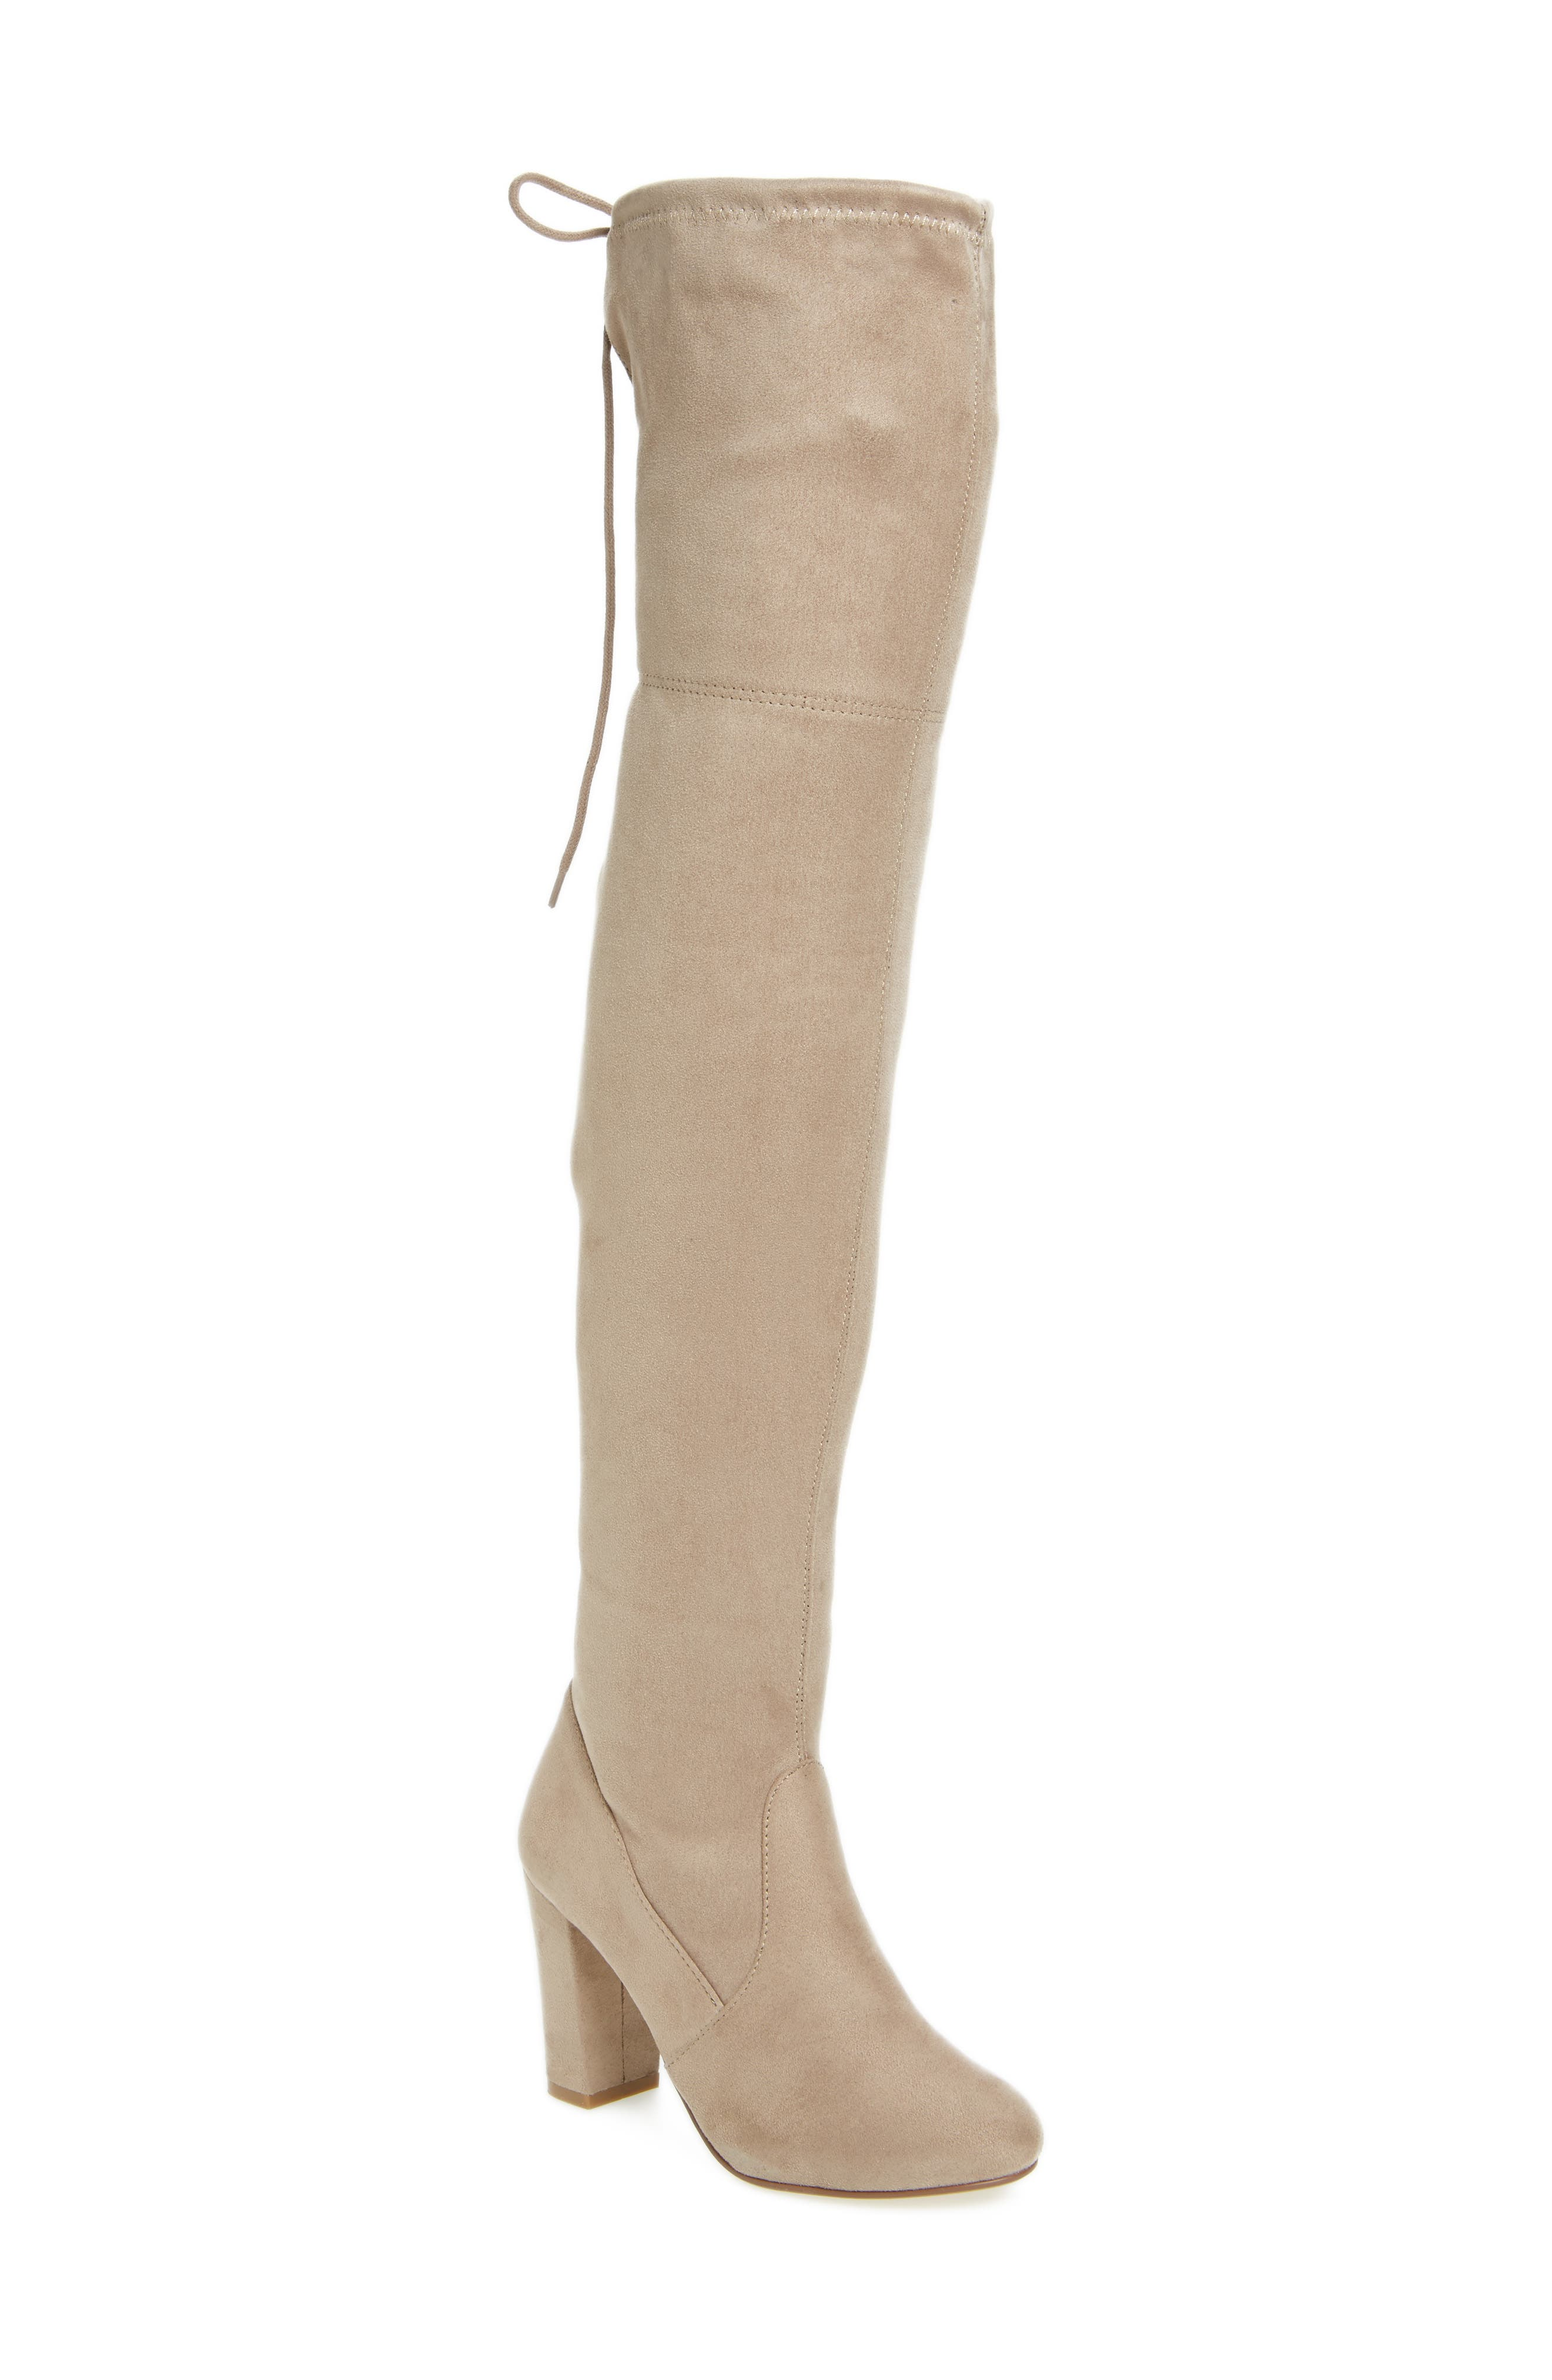 Alternate Image 1 Selected - Chinese Laundry Brinna Over the Knee Boot (Women)